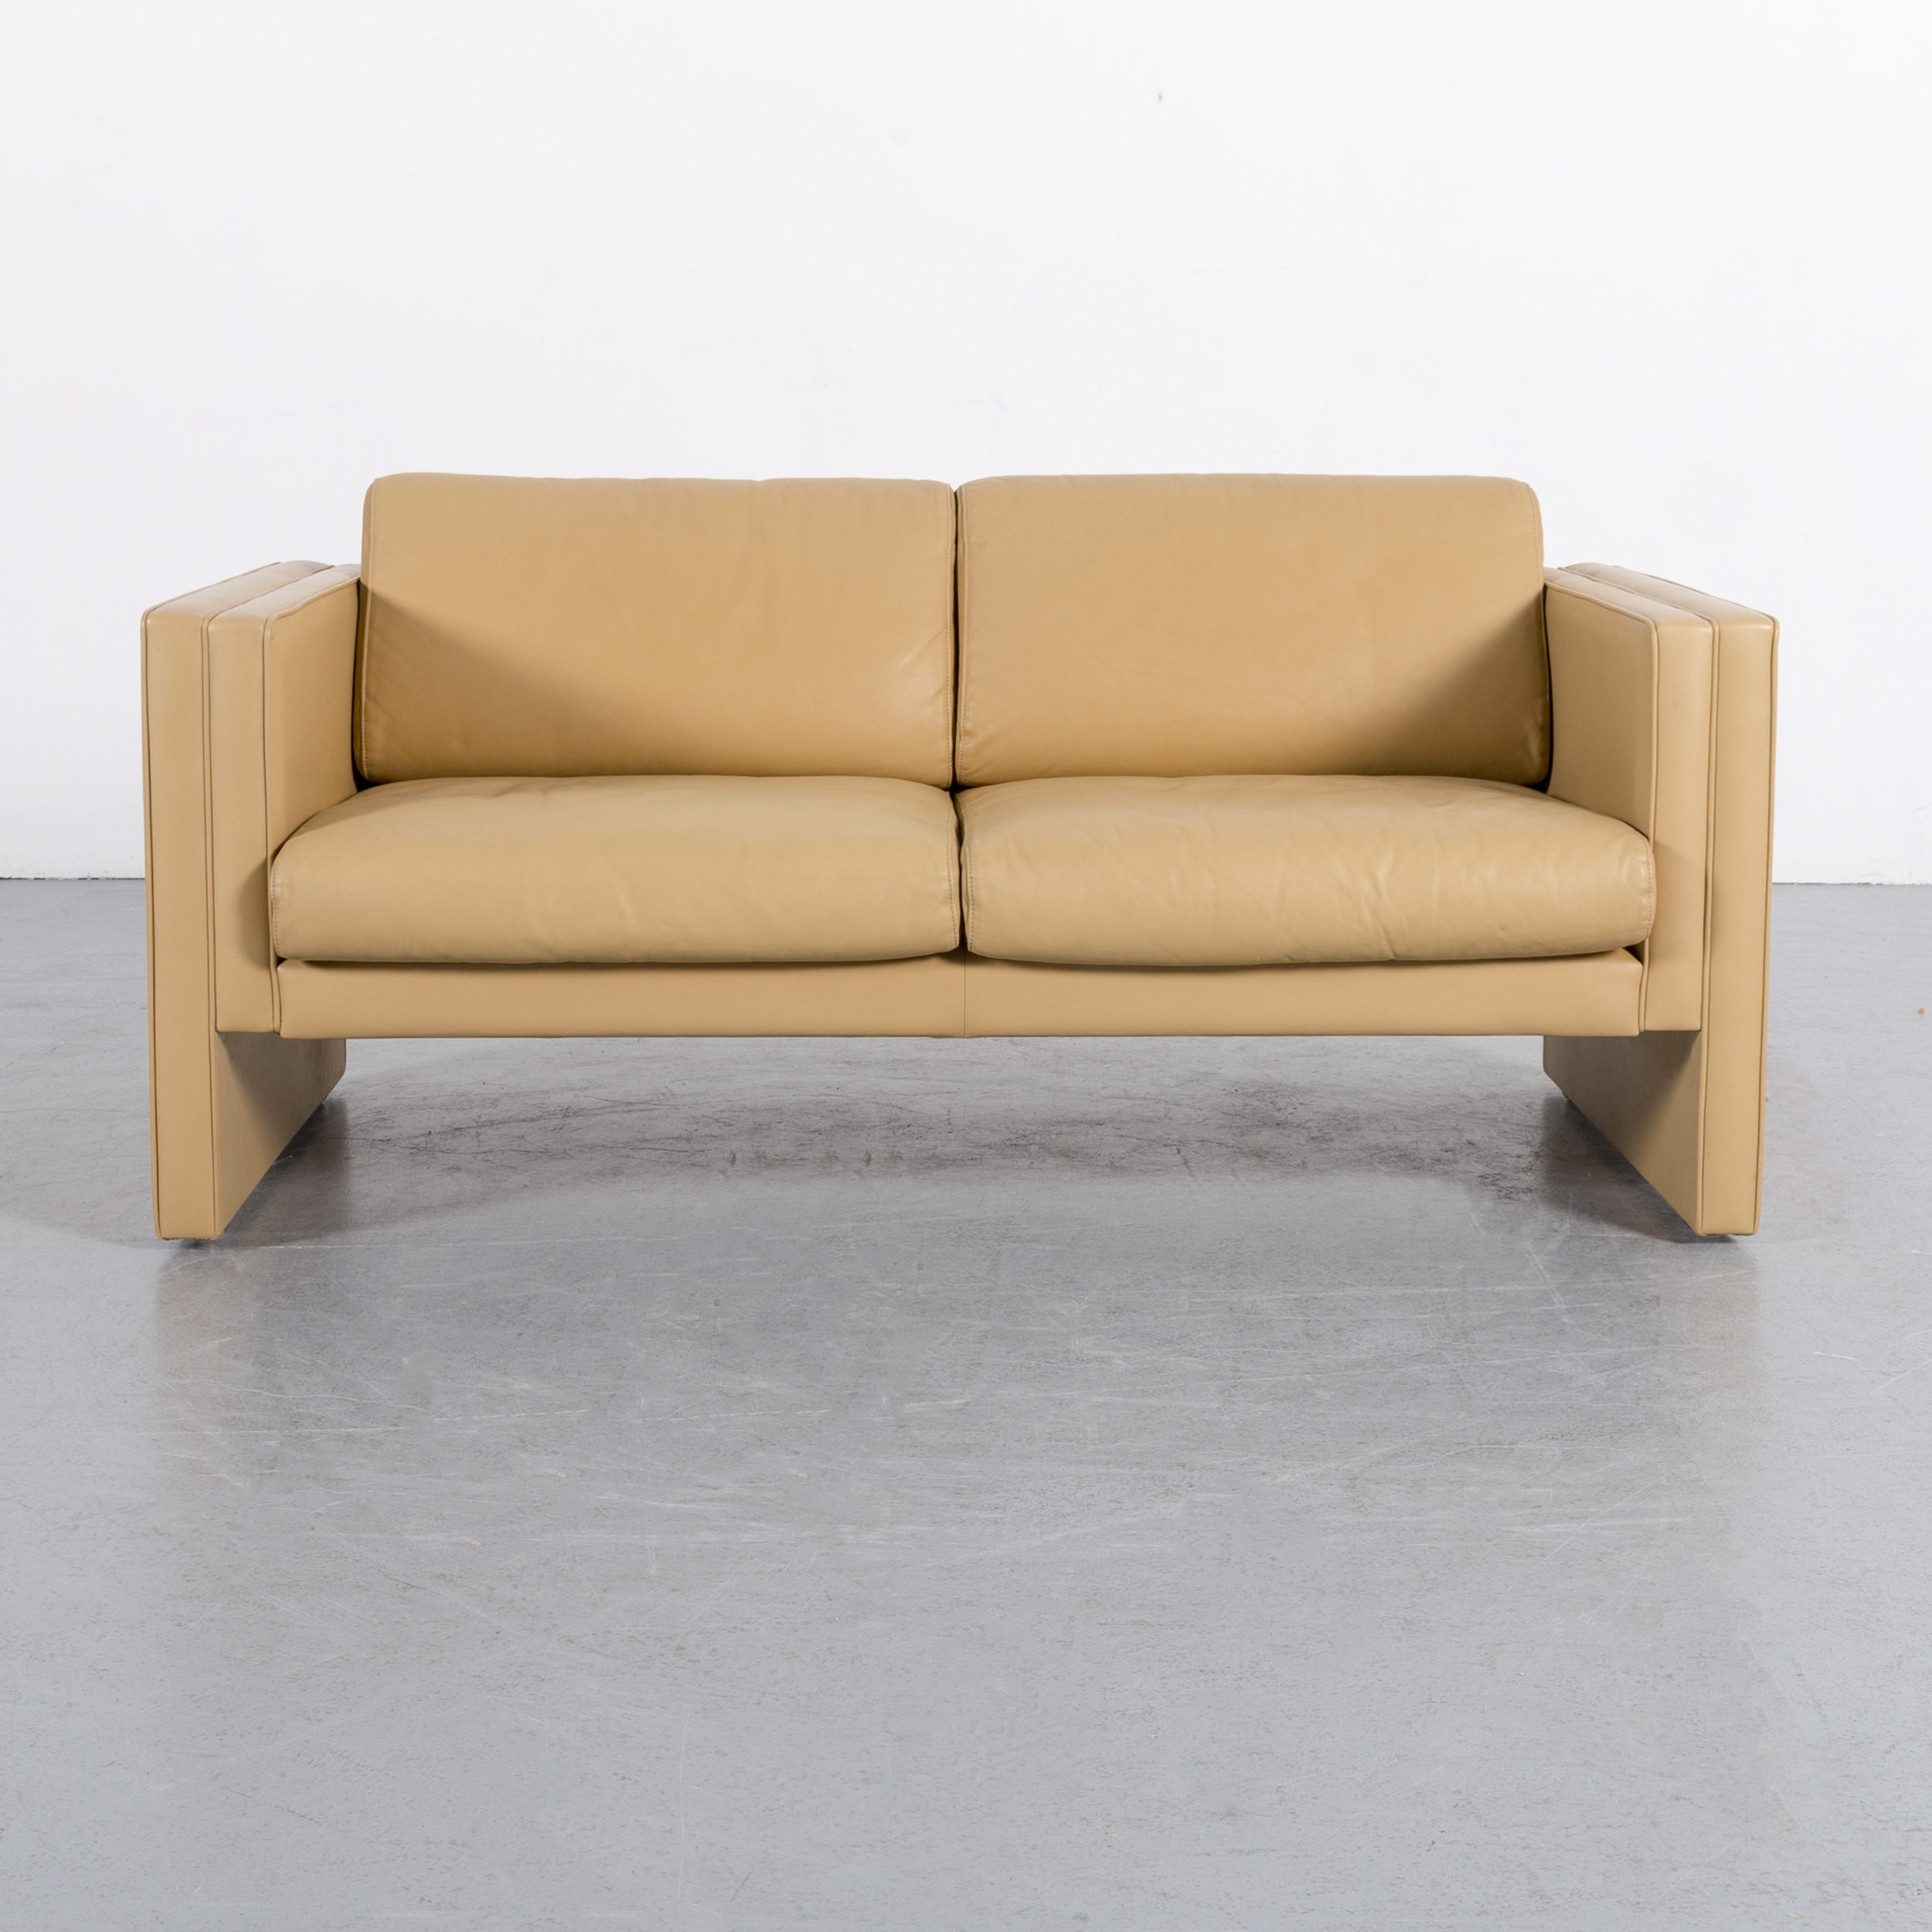 Walter Knoll Leather Sofa Yellow Beige Two Seater Couch Genuine Within Walter Leather Sofa Chairs (View 11 of 25)